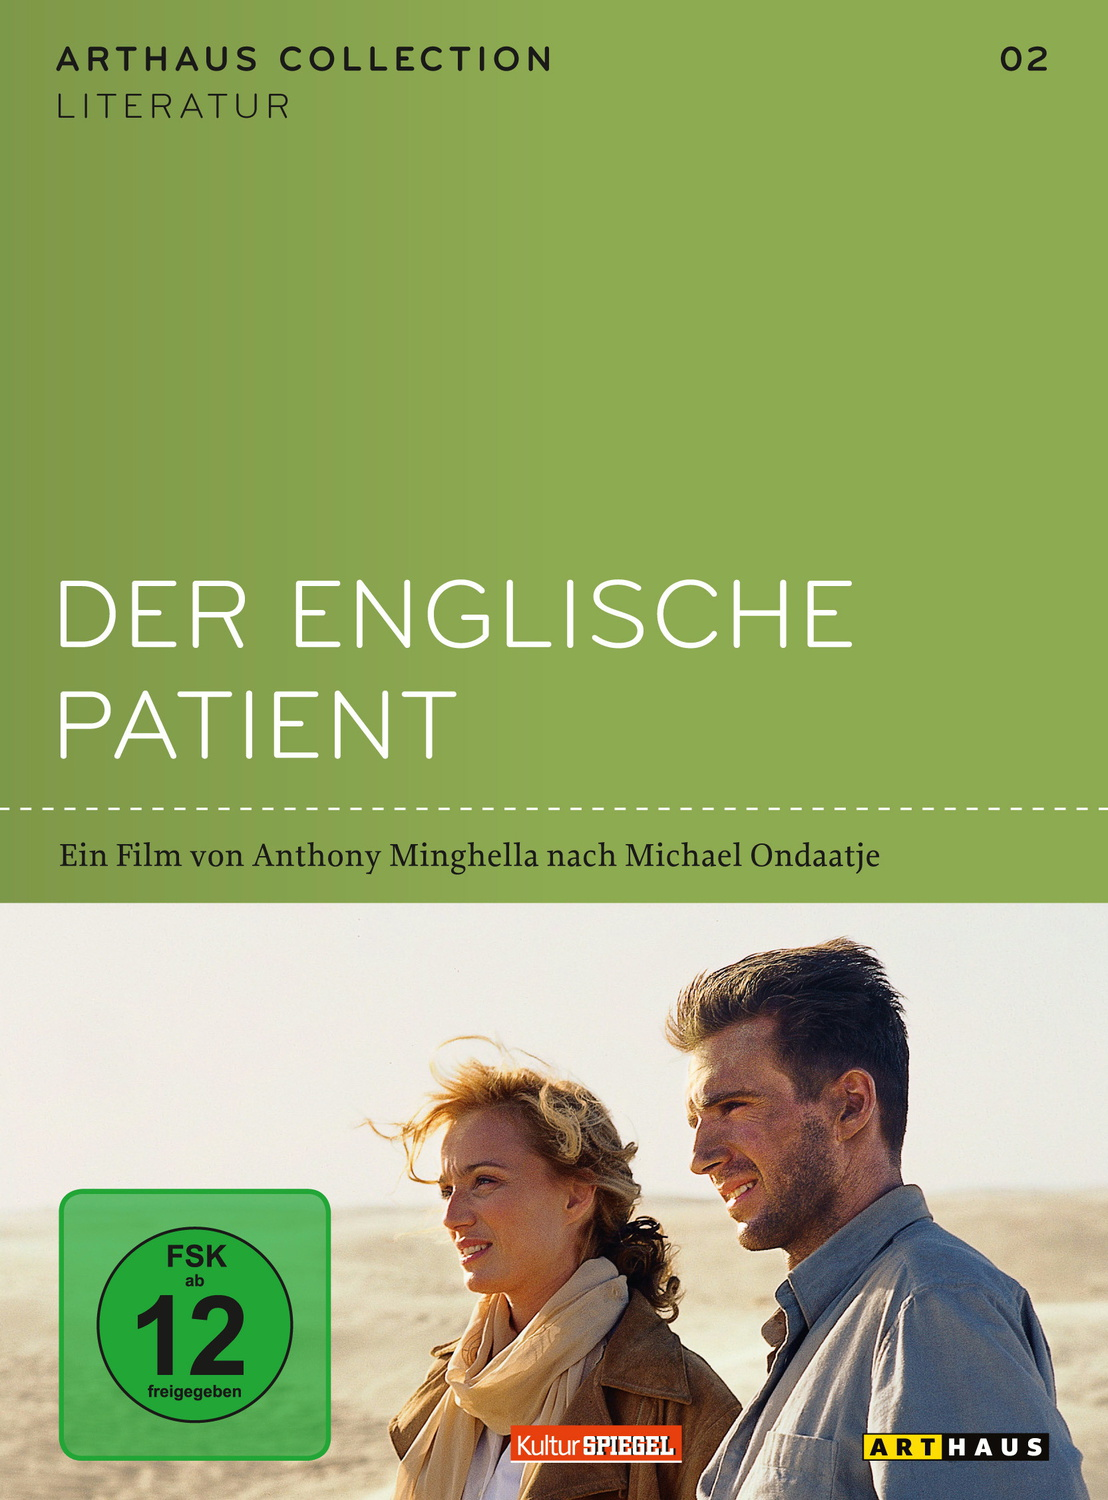 Der englische Patient - Arthaus Collection